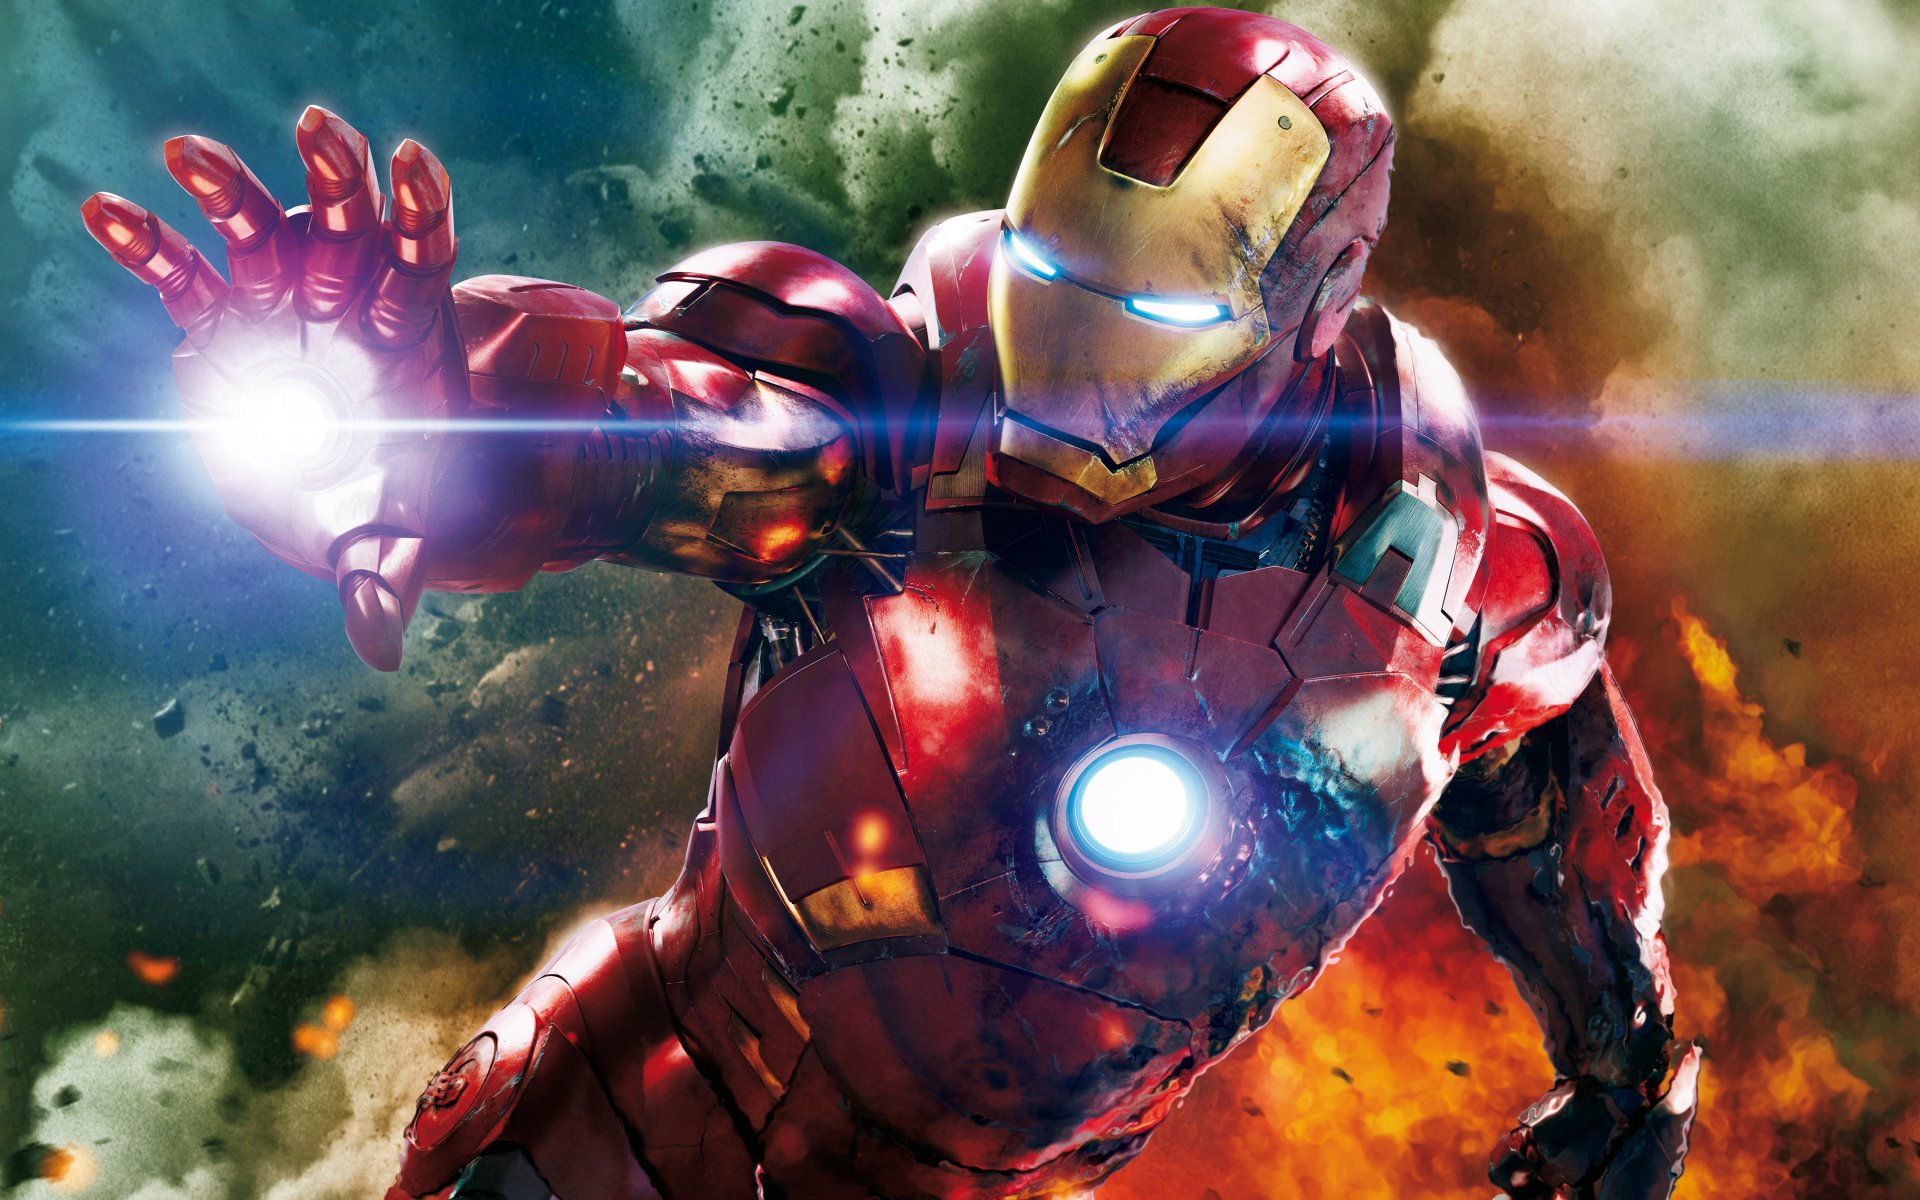 Iron man 3 hd full movie free download